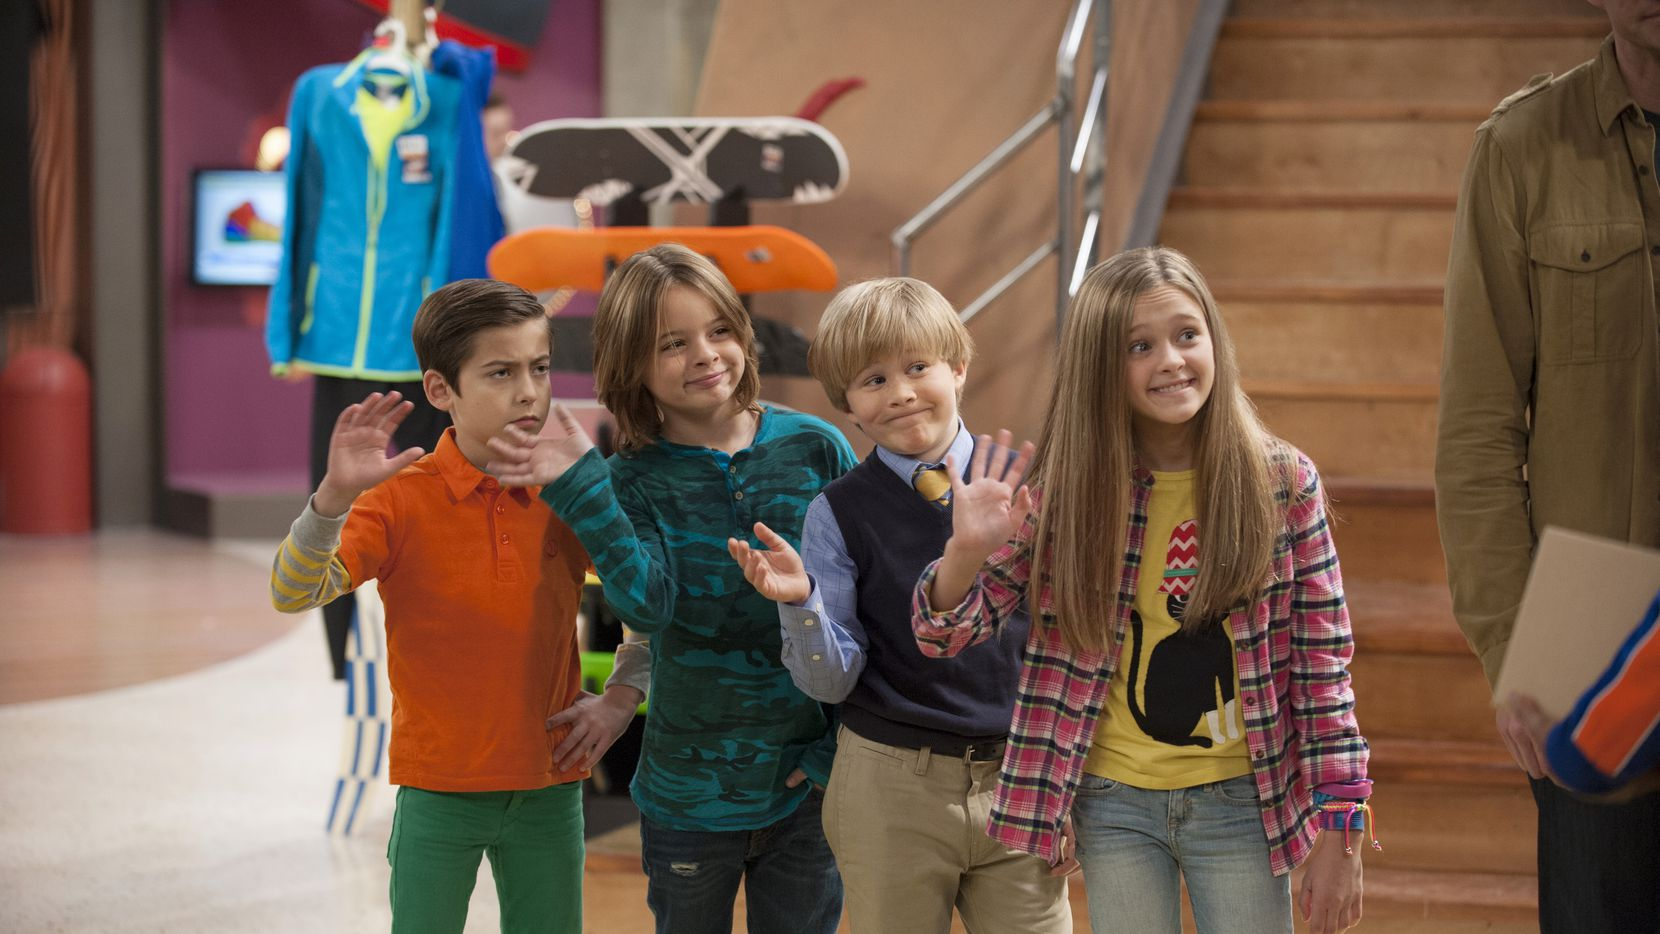 """Nicky (Aidan Gallagher), Dicky (Mace Coronel), Ricky (Casey Simpson), and Dawn (Lizzy Greene) in the first season of """"Nicky,, Ricky, Dicky and Dawn."""""""